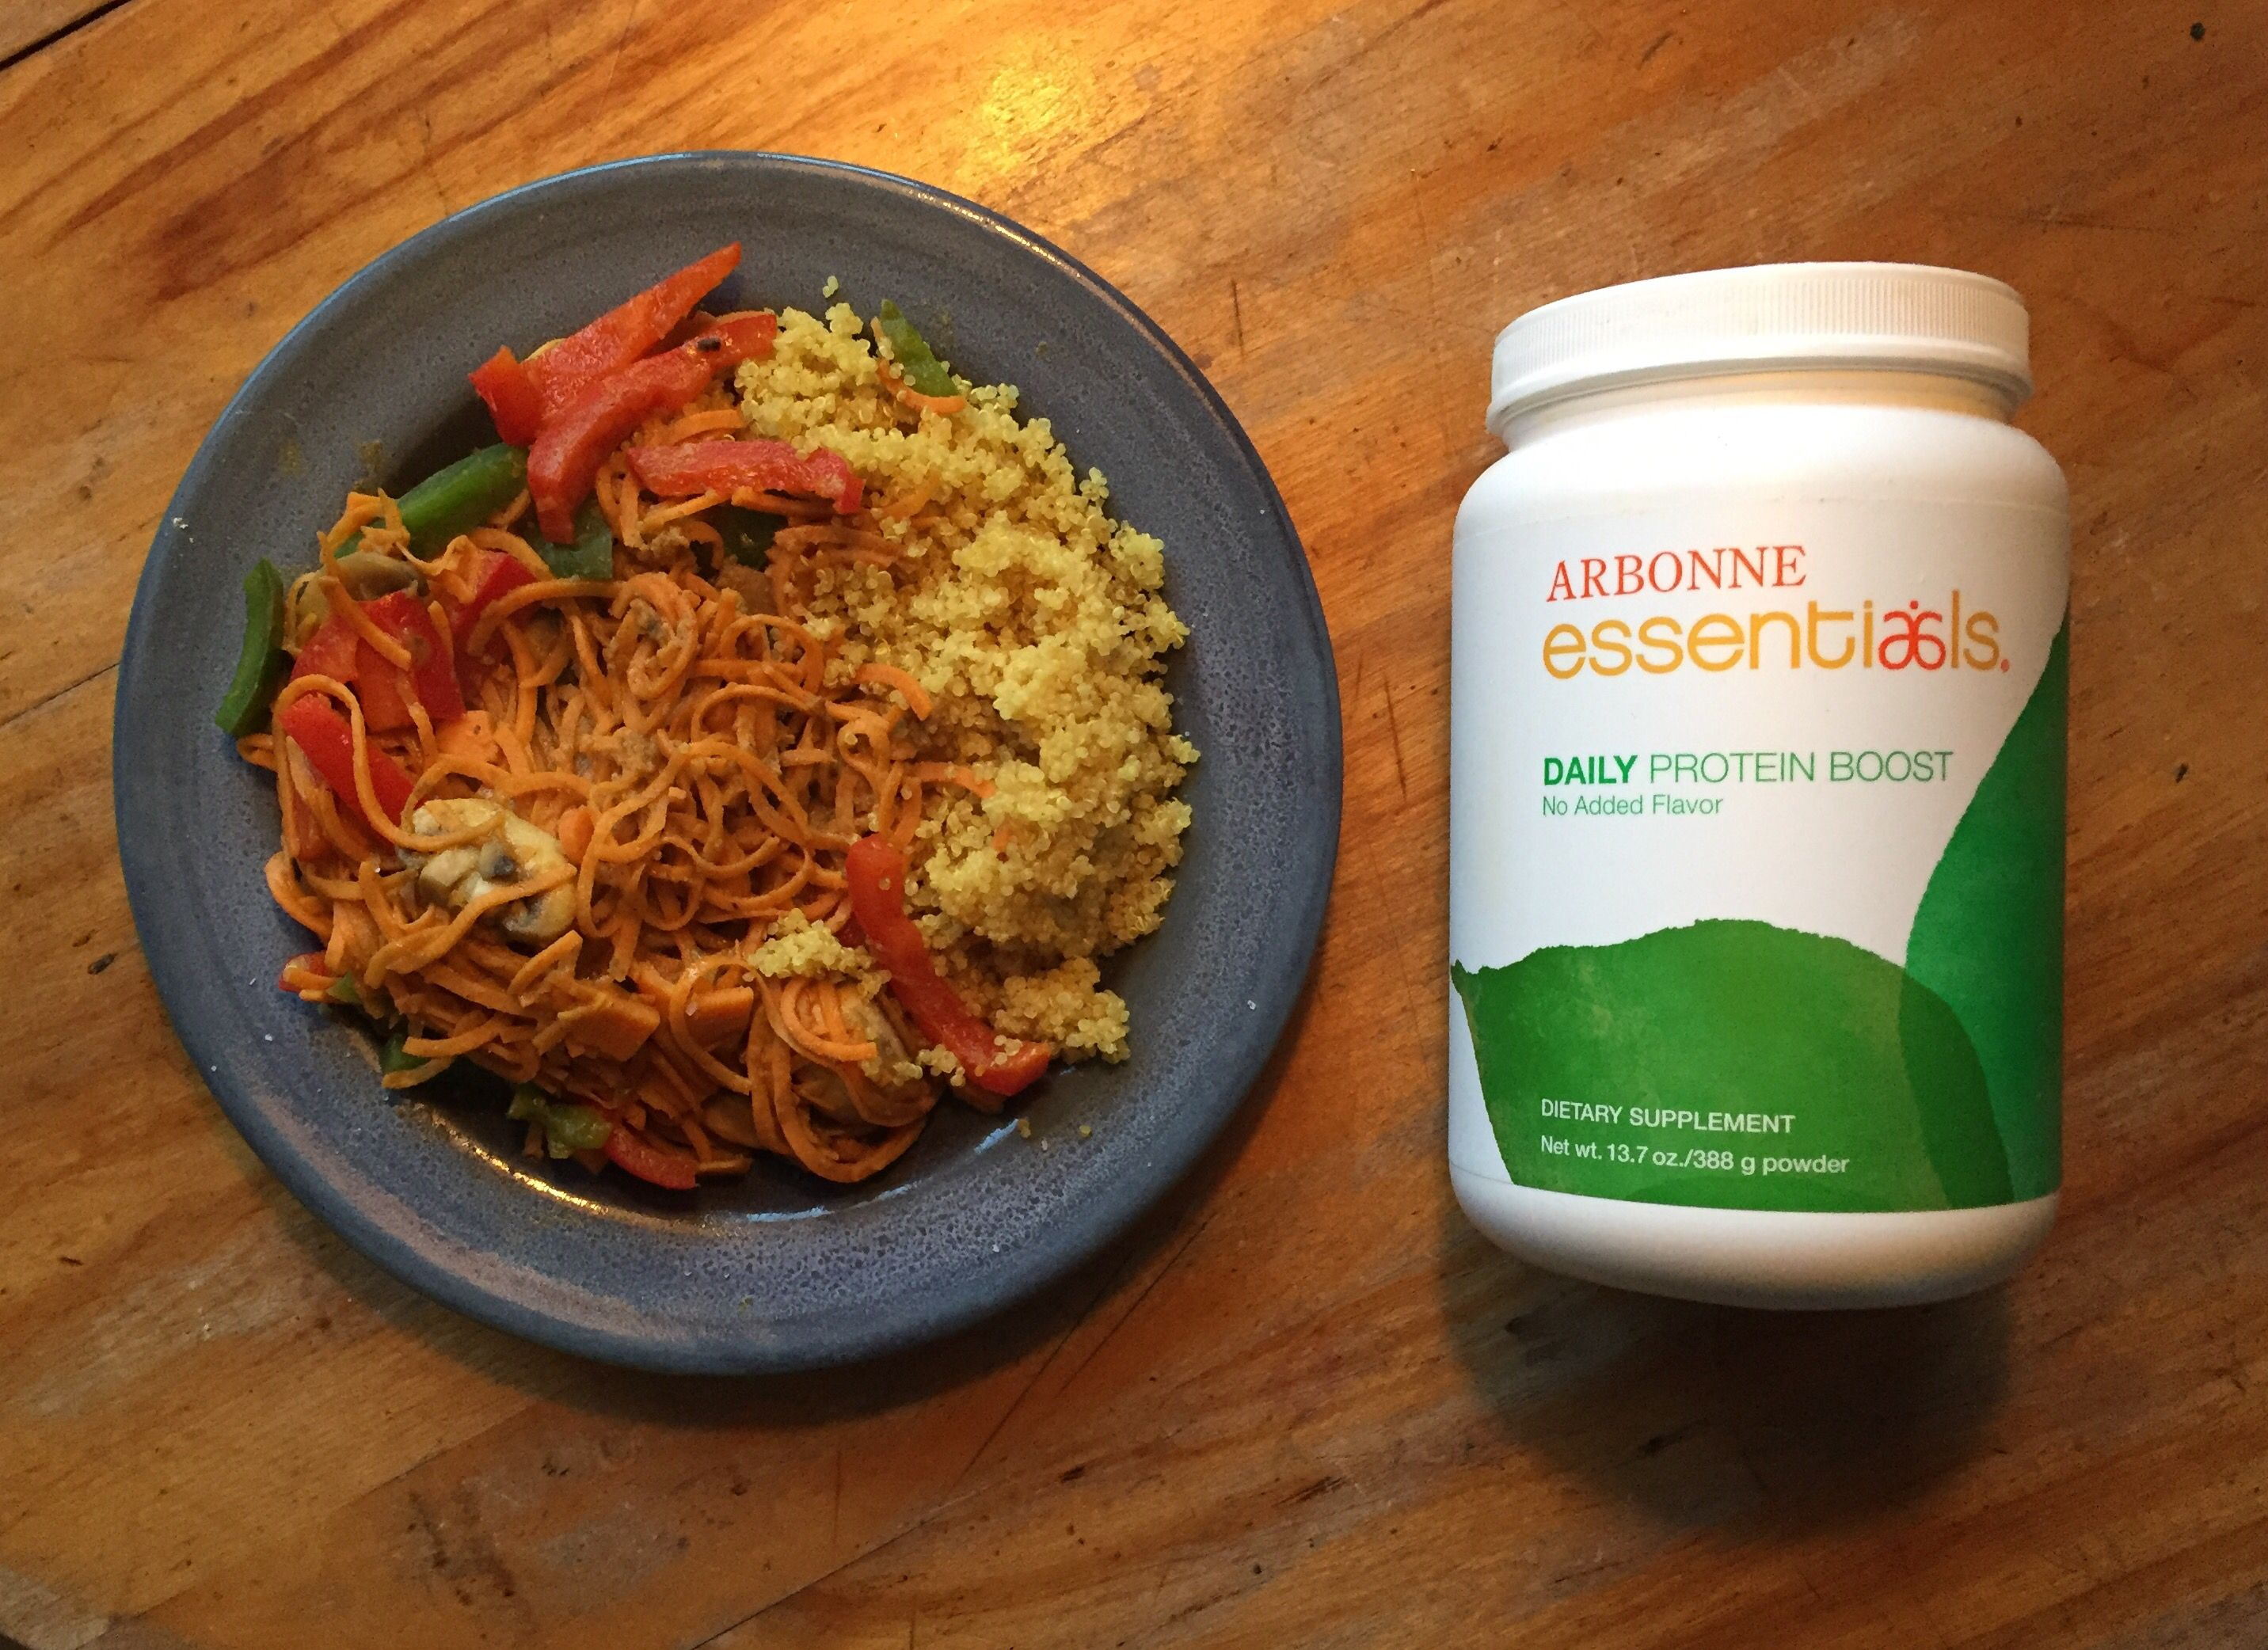 Sugar-free vegan protein powder added to curried veggies and turmeric quinoa. Awesome!